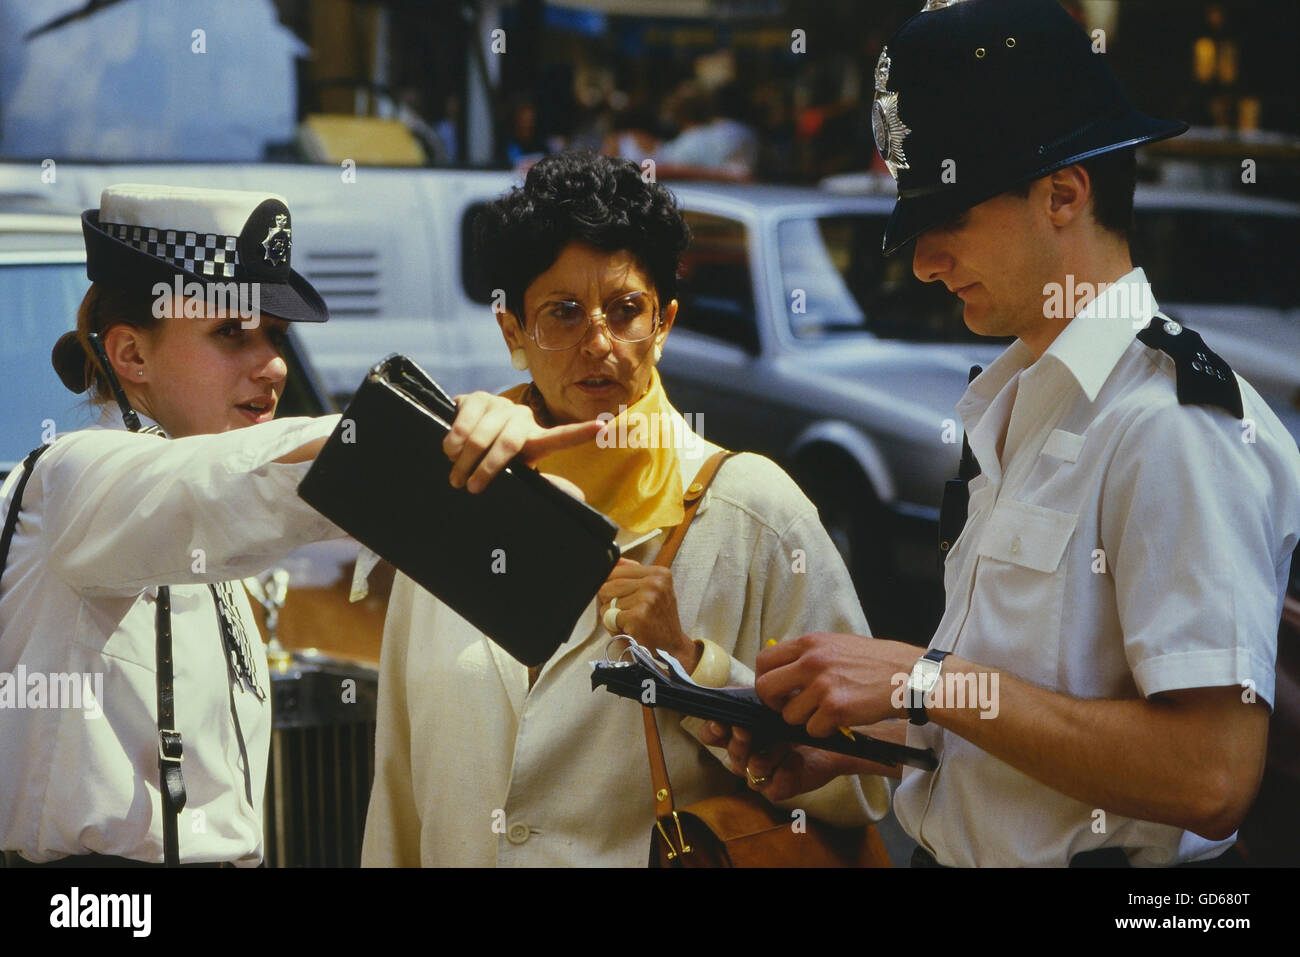 Police officers giving directions to a woman. London. England. UK - Stock Image